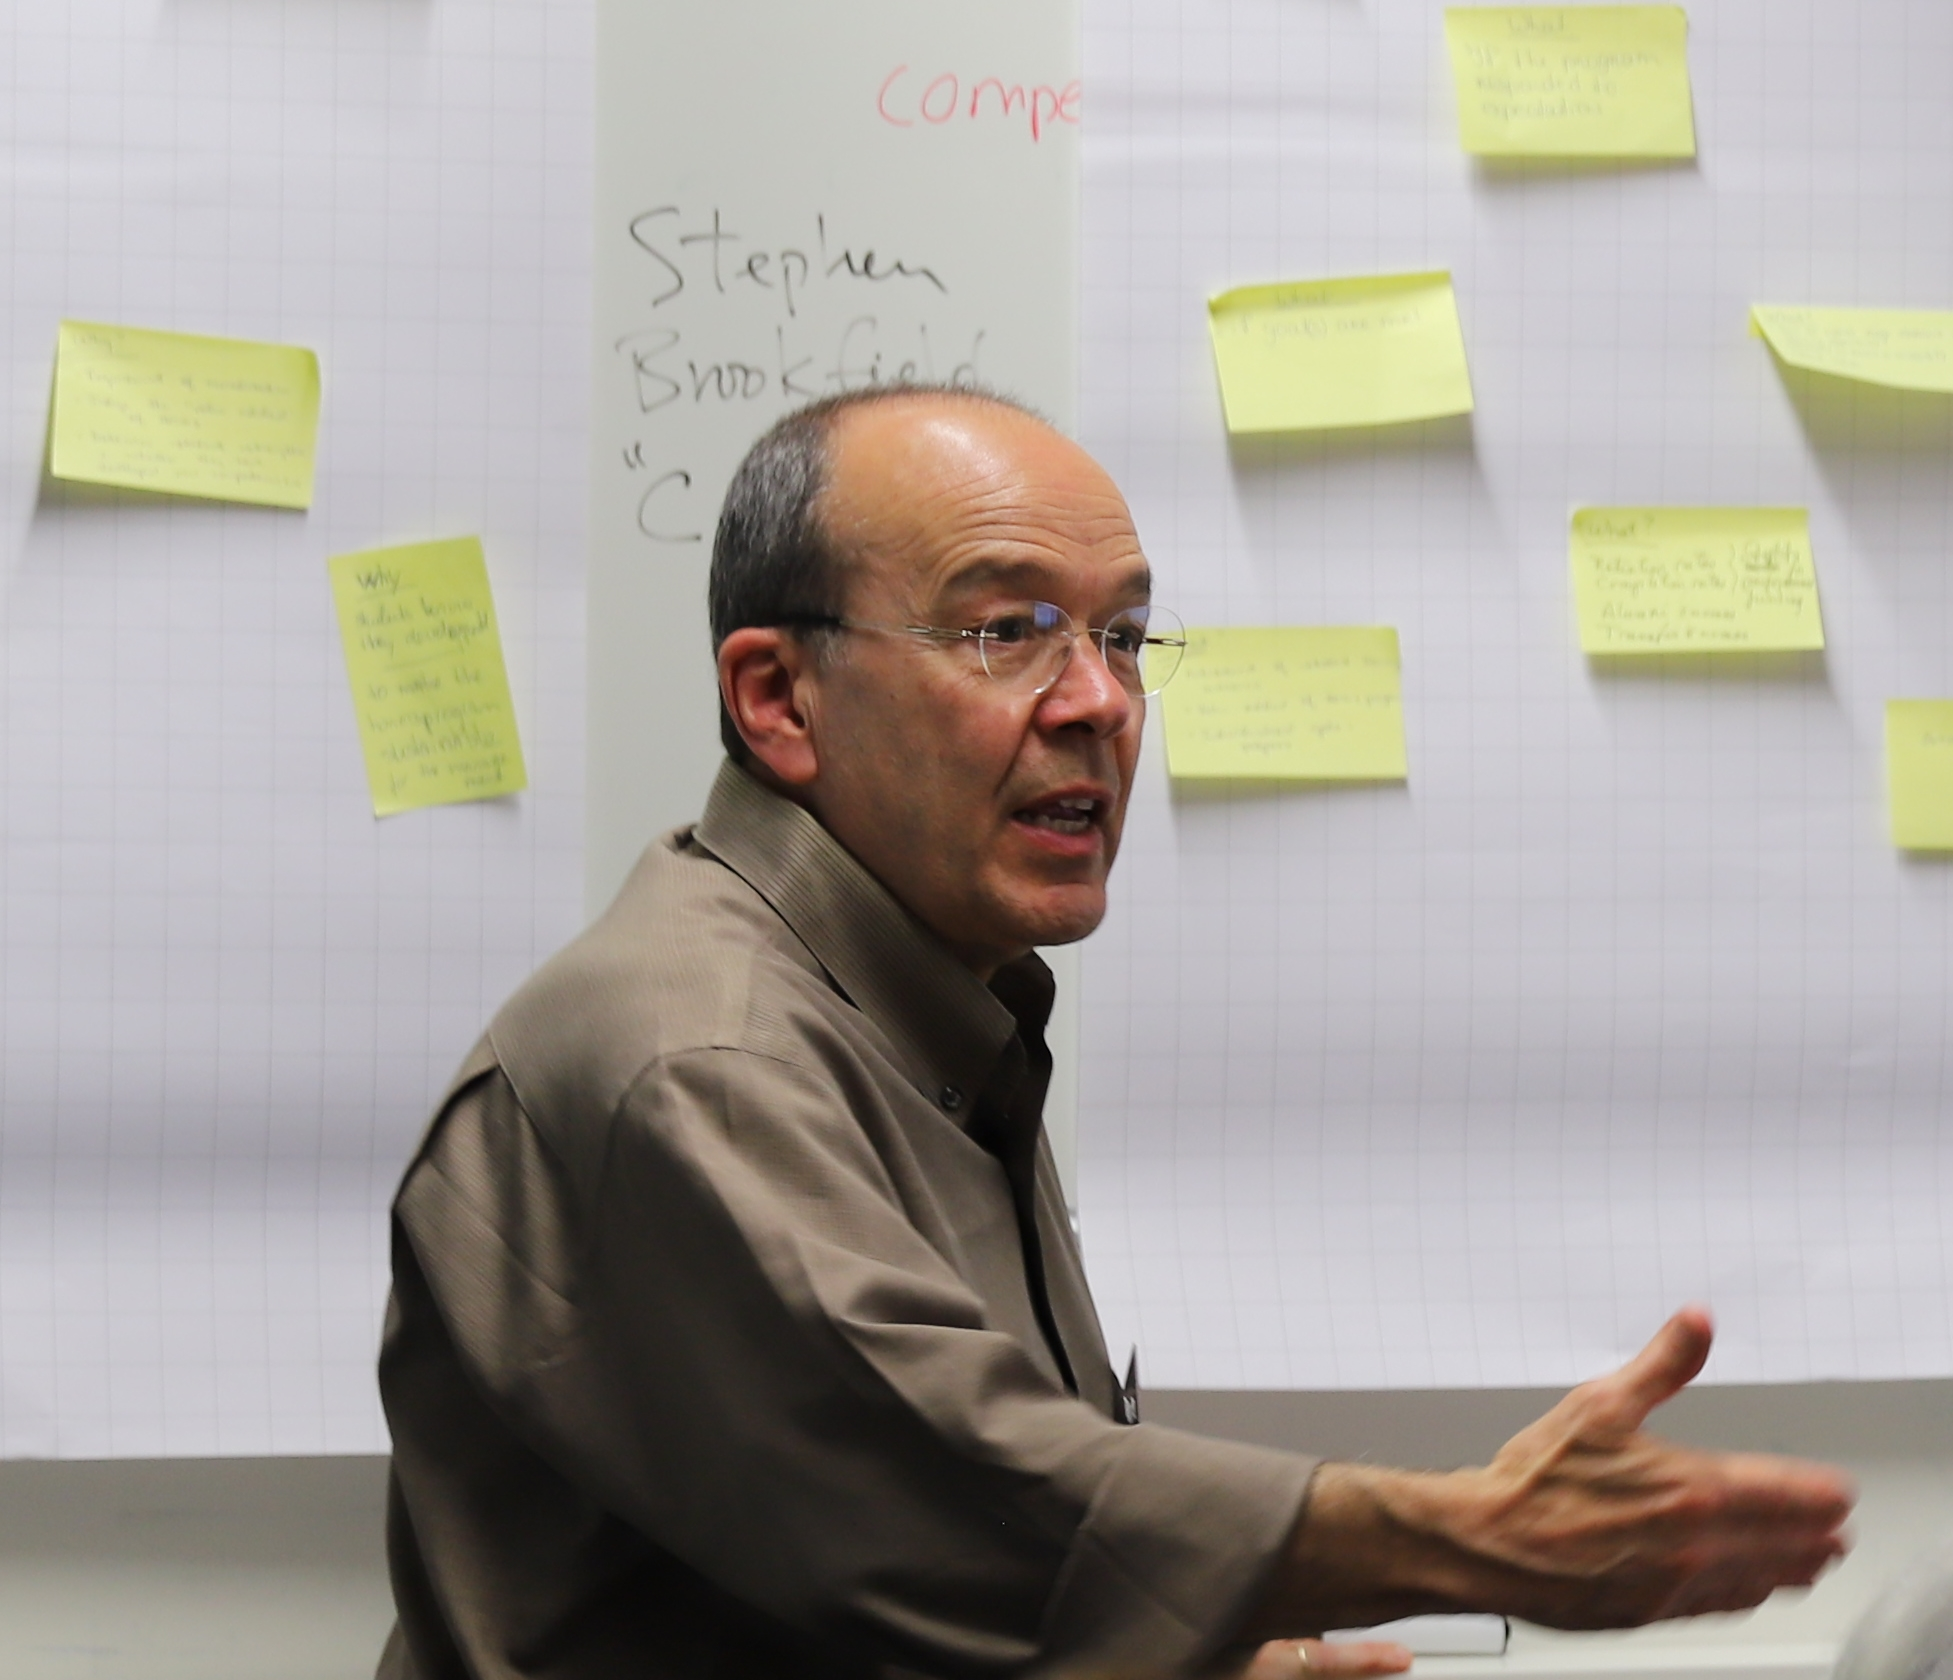 John Zubizarreta co-led an international faculty institute on honors education in Groningen, The Netherlands